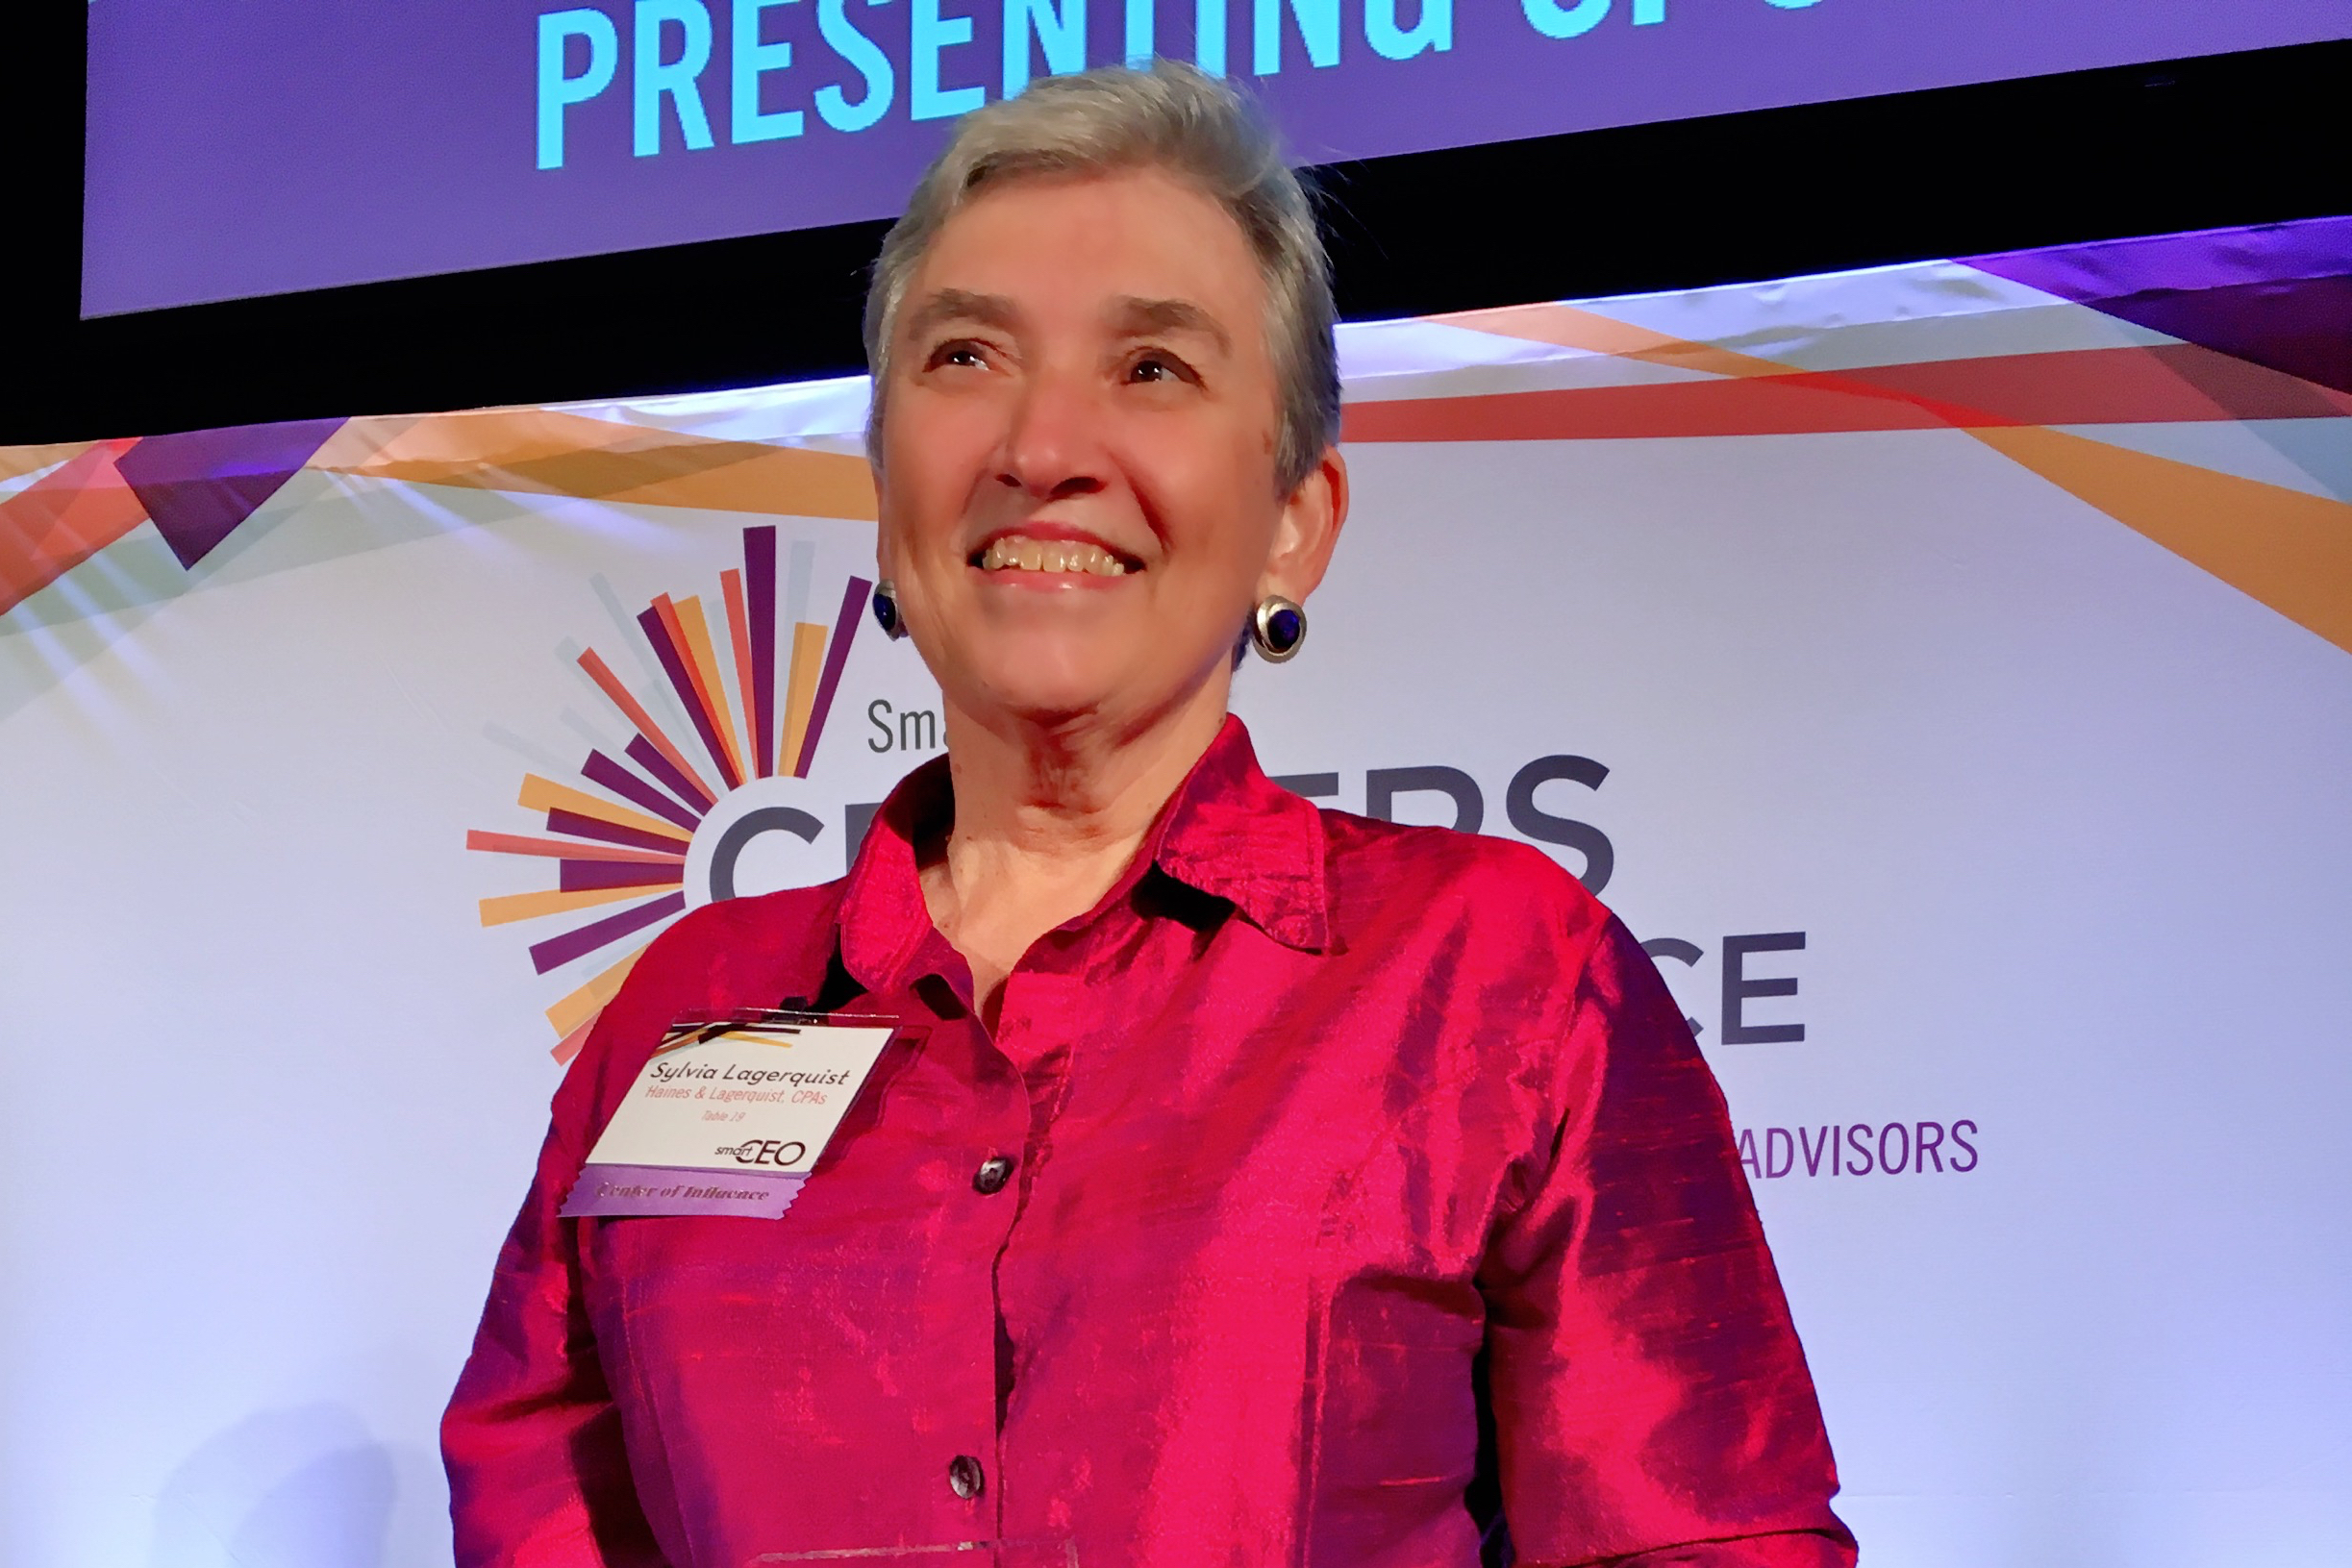 Sylvia Lagerquist Selected as a Winner for 2016 Centers of Influence Awards